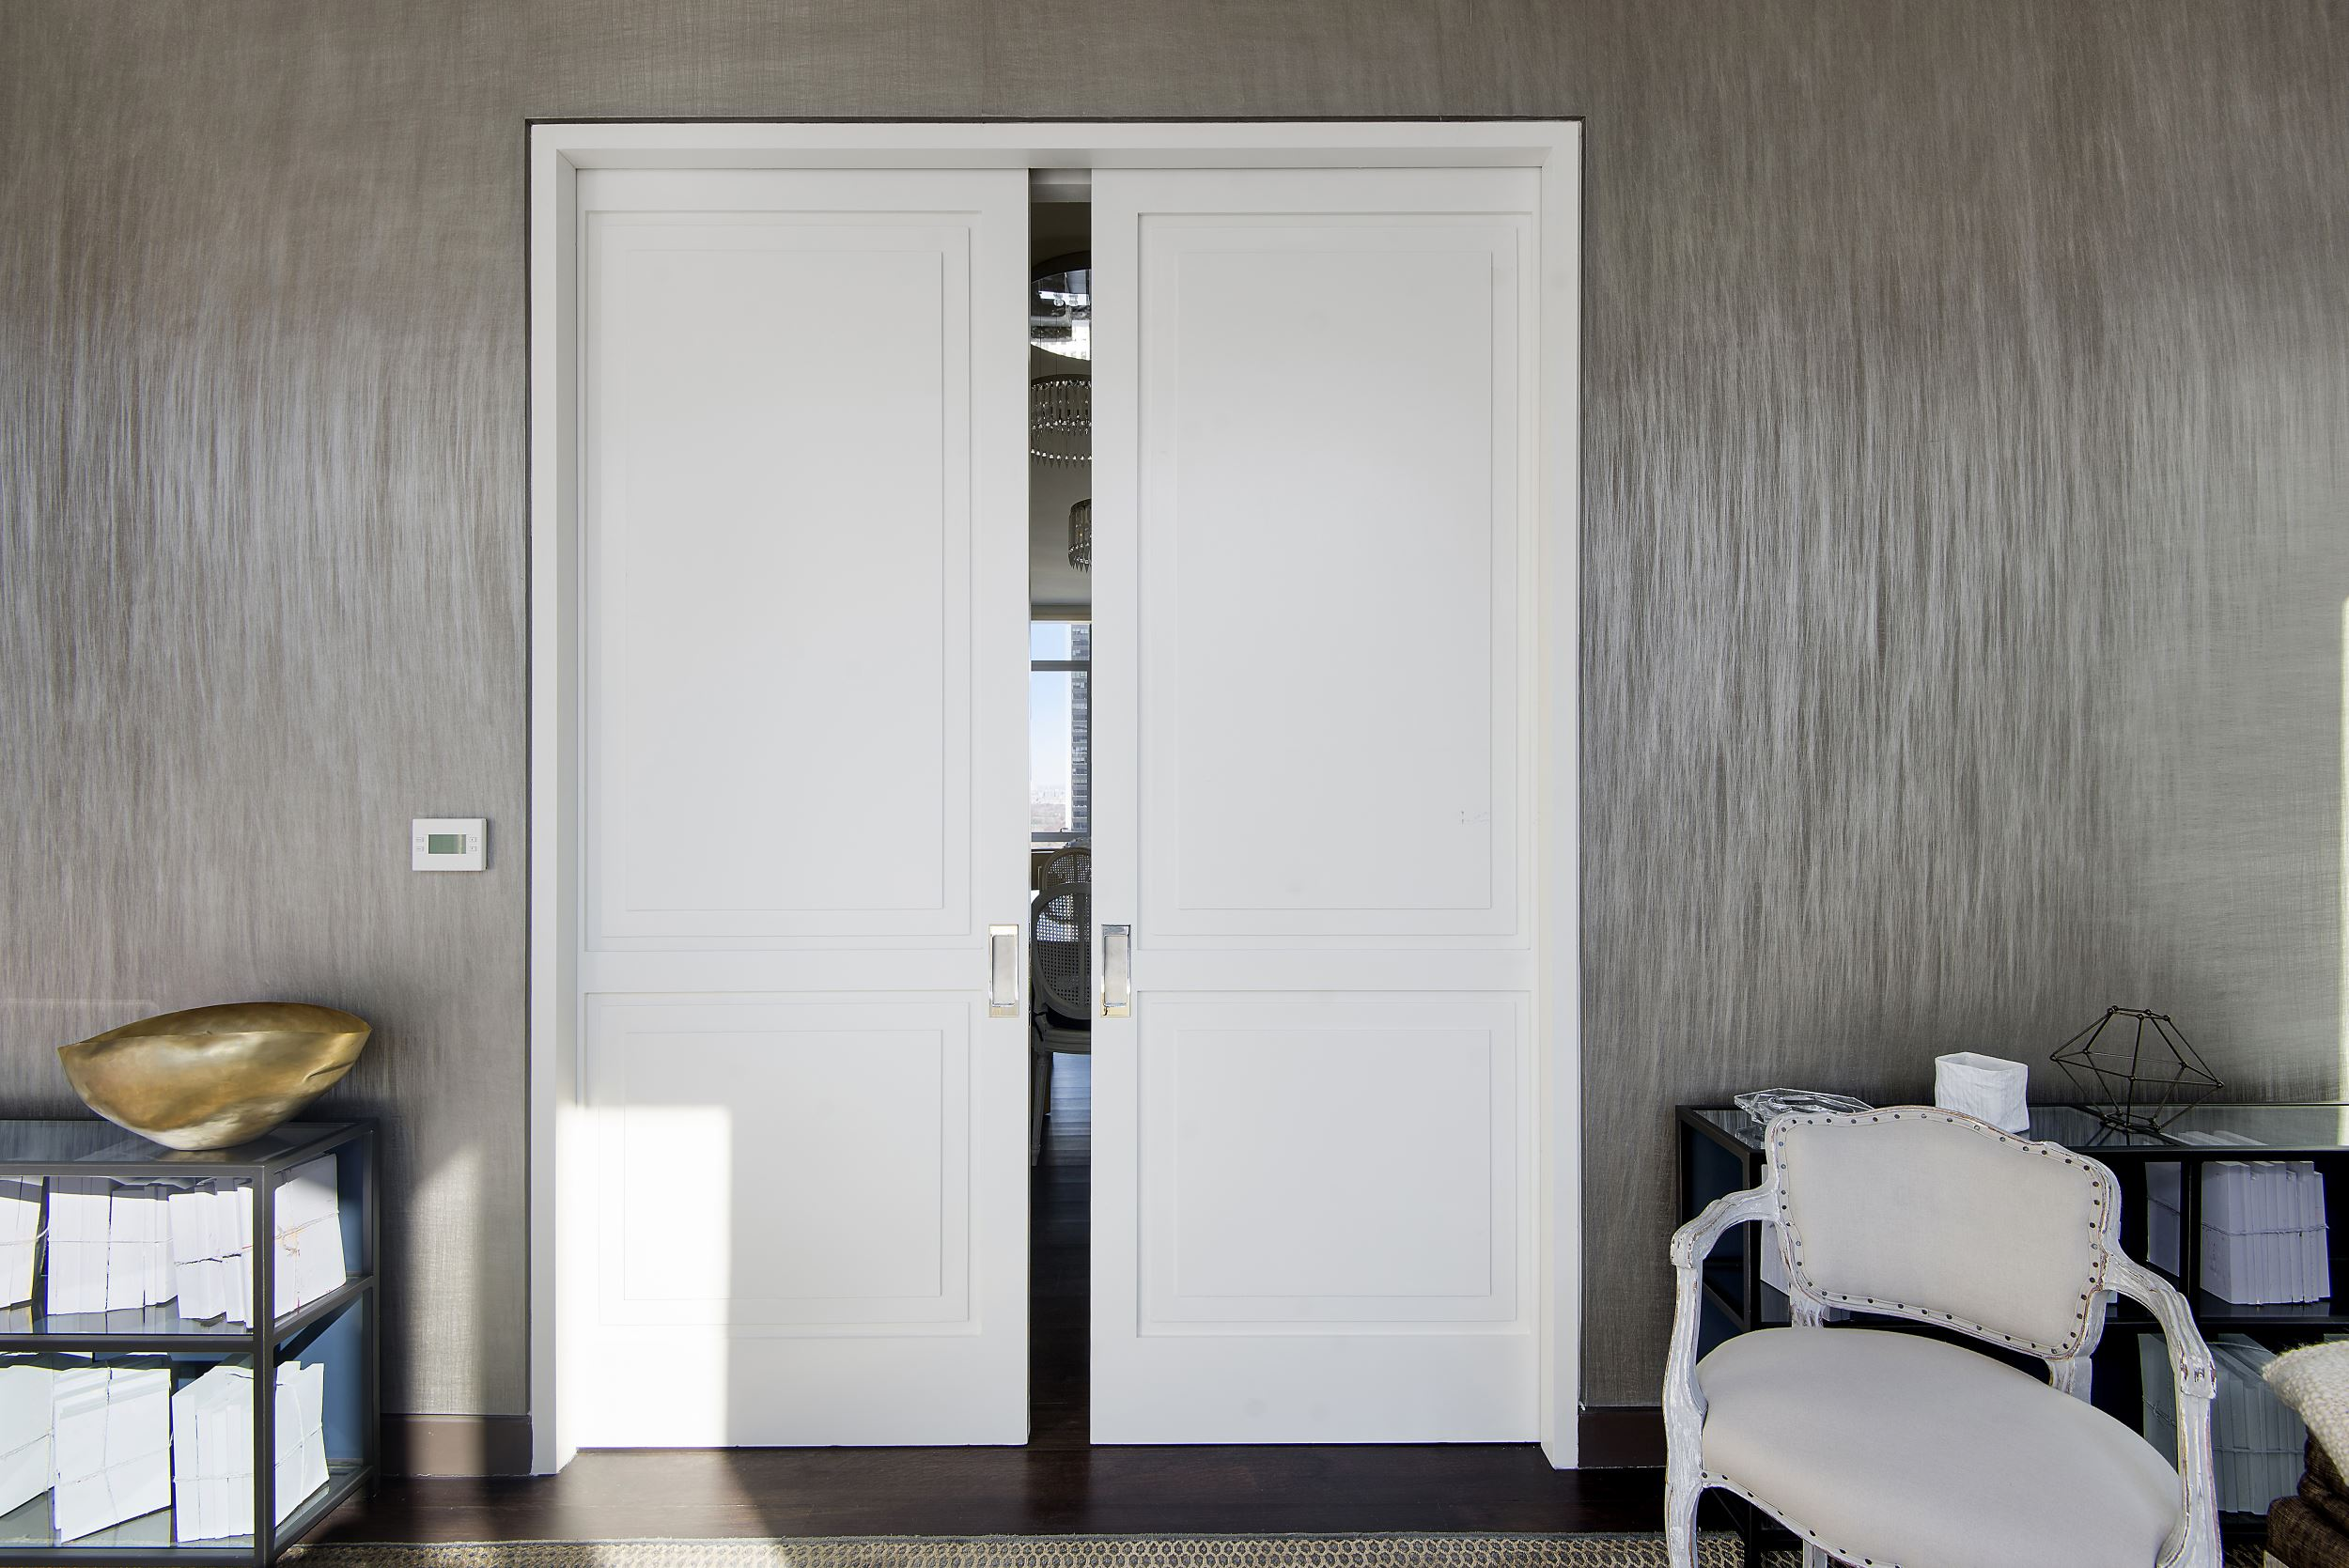 Project Photo Gallery & EnVivo™ Residential Doors - VT Industries Inc.